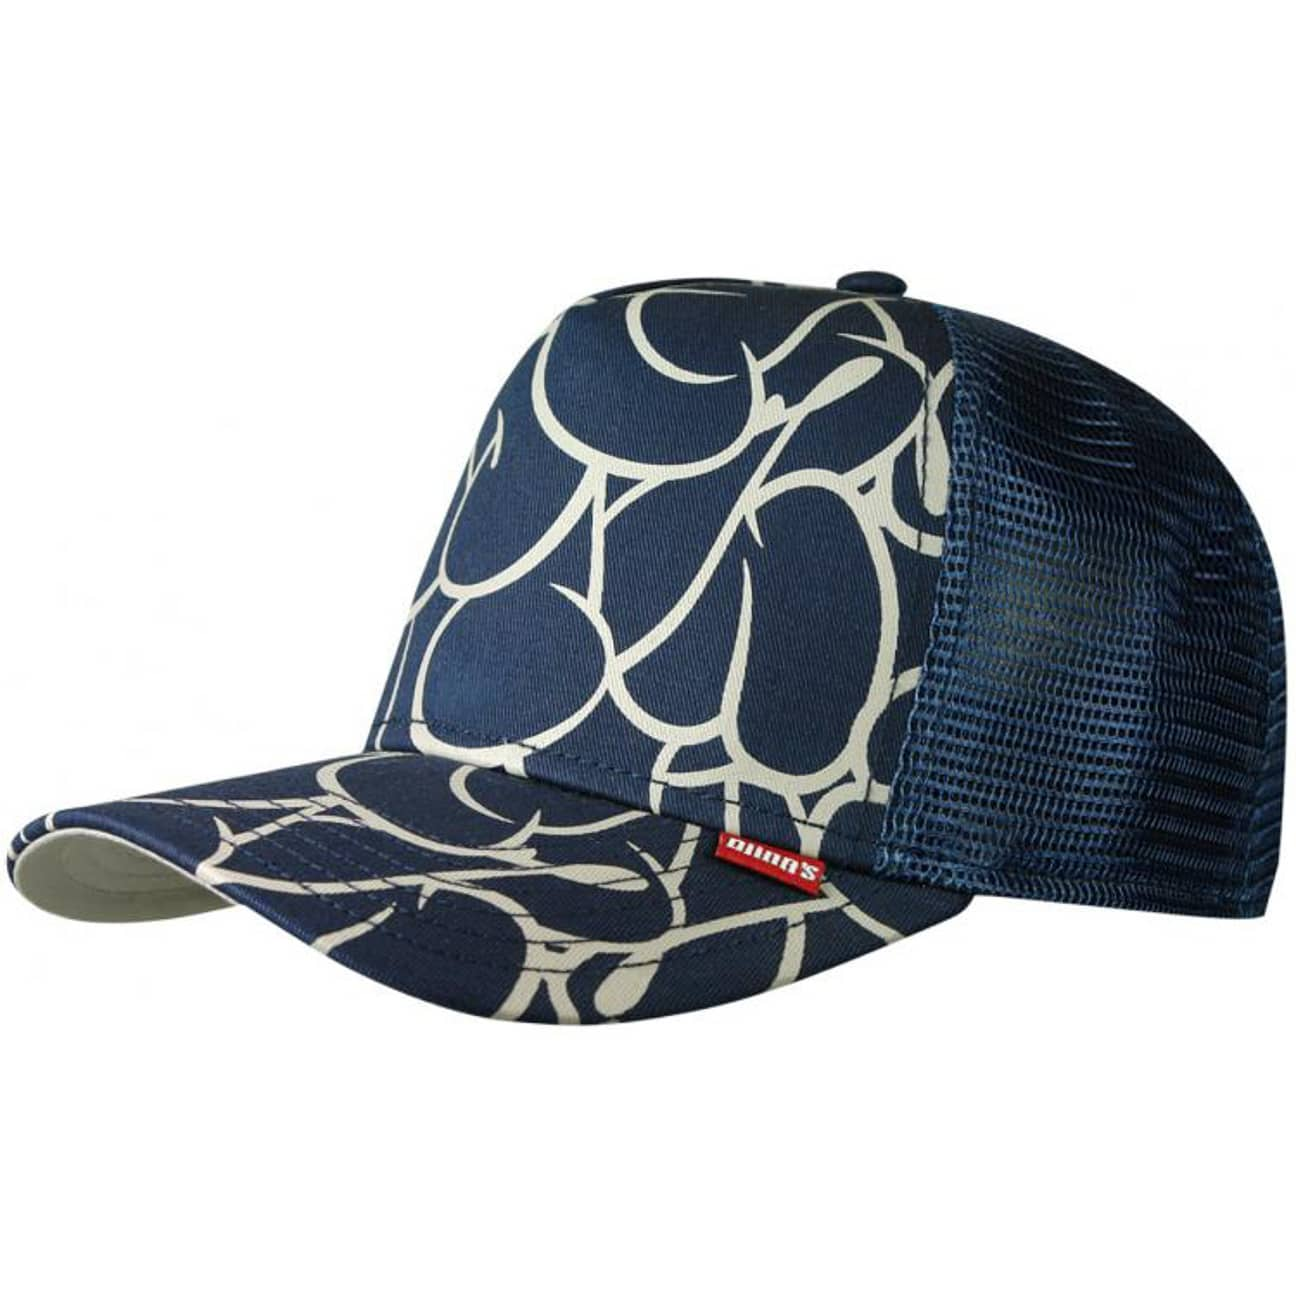 bubble high fitted trucker cap by djinns eur 21 99. Black Bedroom Furniture Sets. Home Design Ideas